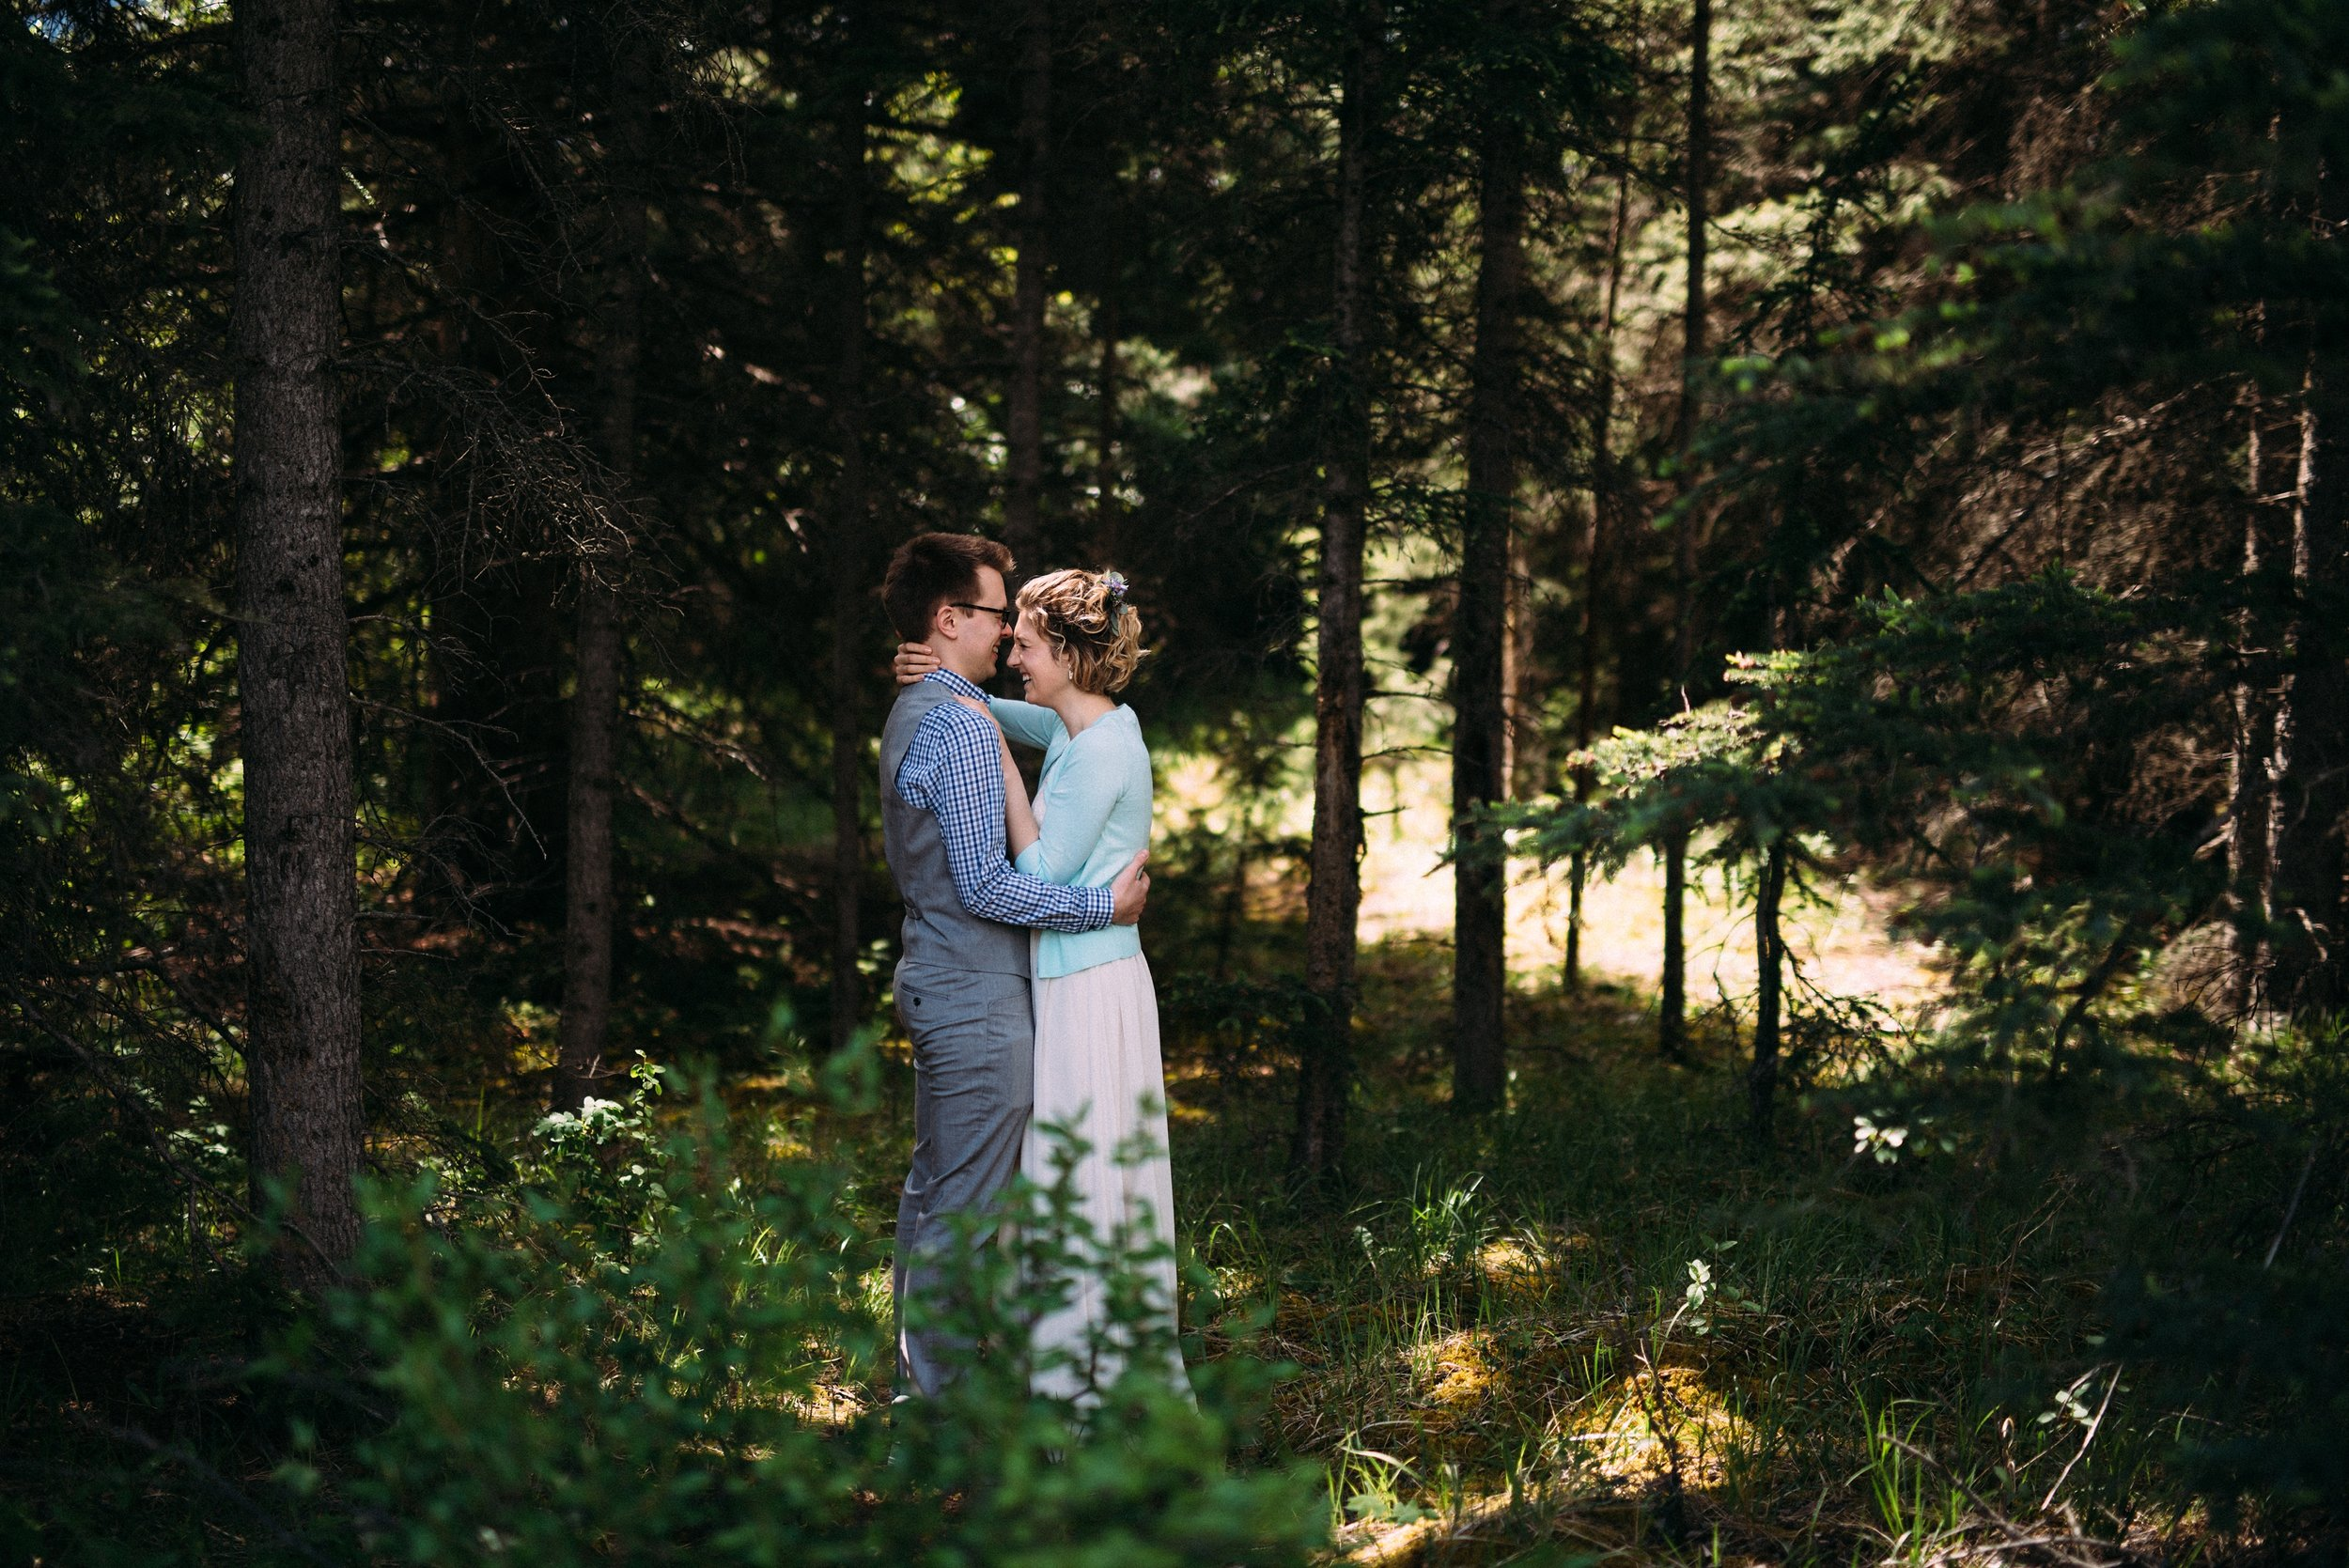 kaihla_tonai_intimate_wedding_elopement_photographer_3815